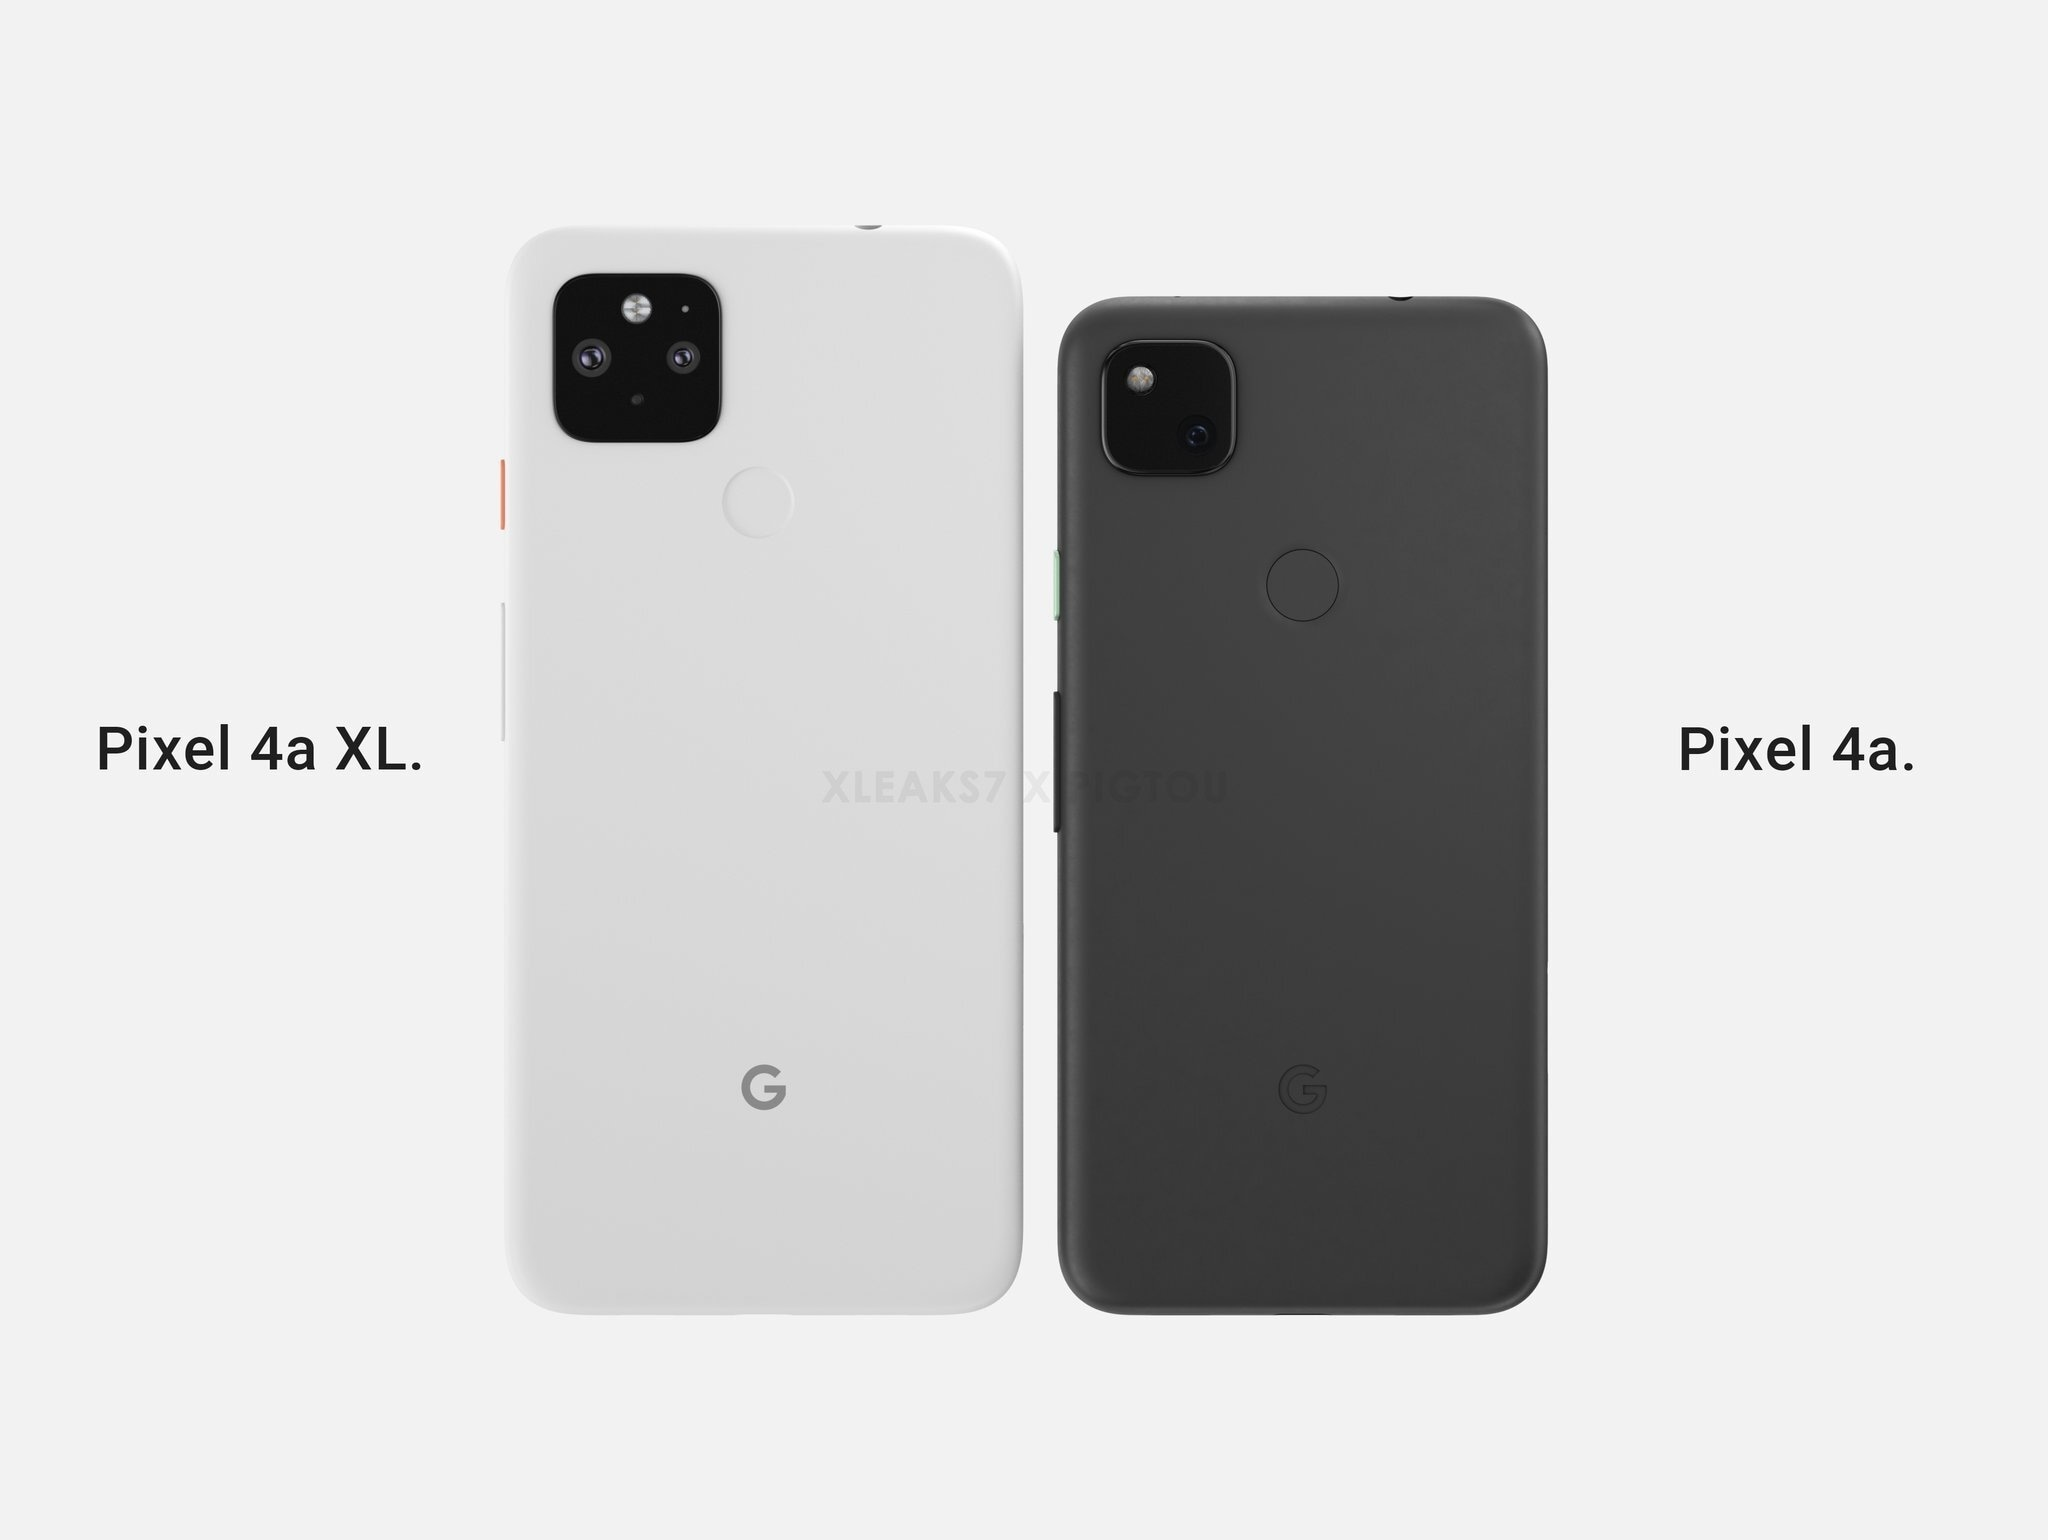 Cancelled Pixel 4a XL and upcoming Pixel 4a